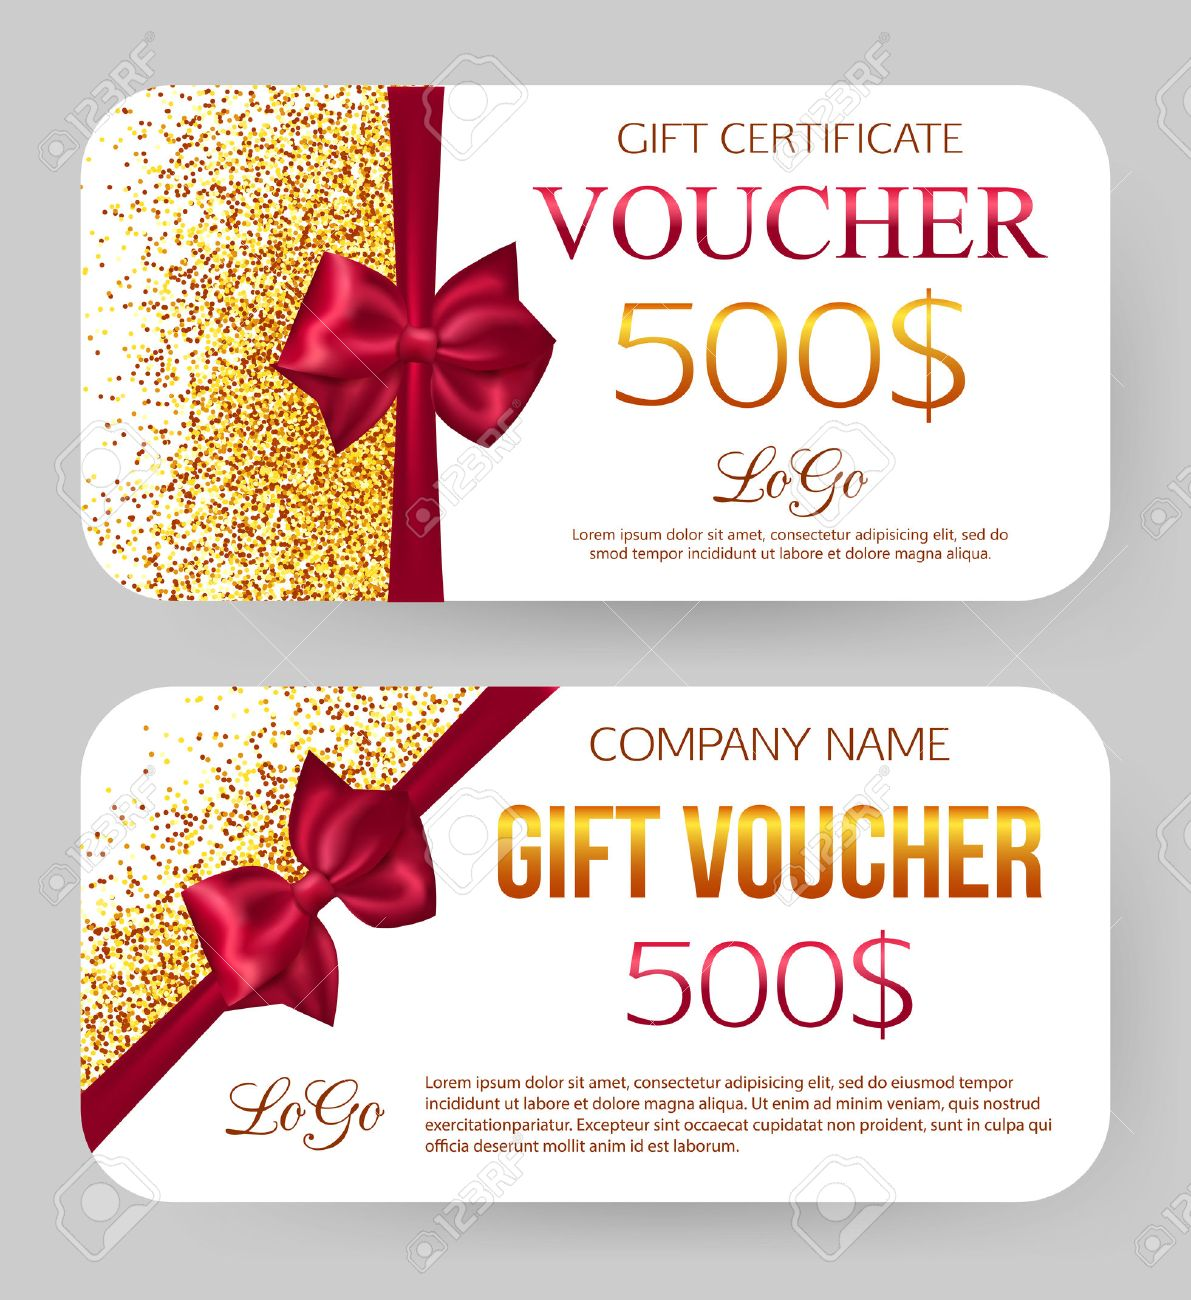 Gift voucher template golden design for gift certificate coupon gift voucher template golden design for gift certificate coupon golden dust 500 yelopaper Image collections